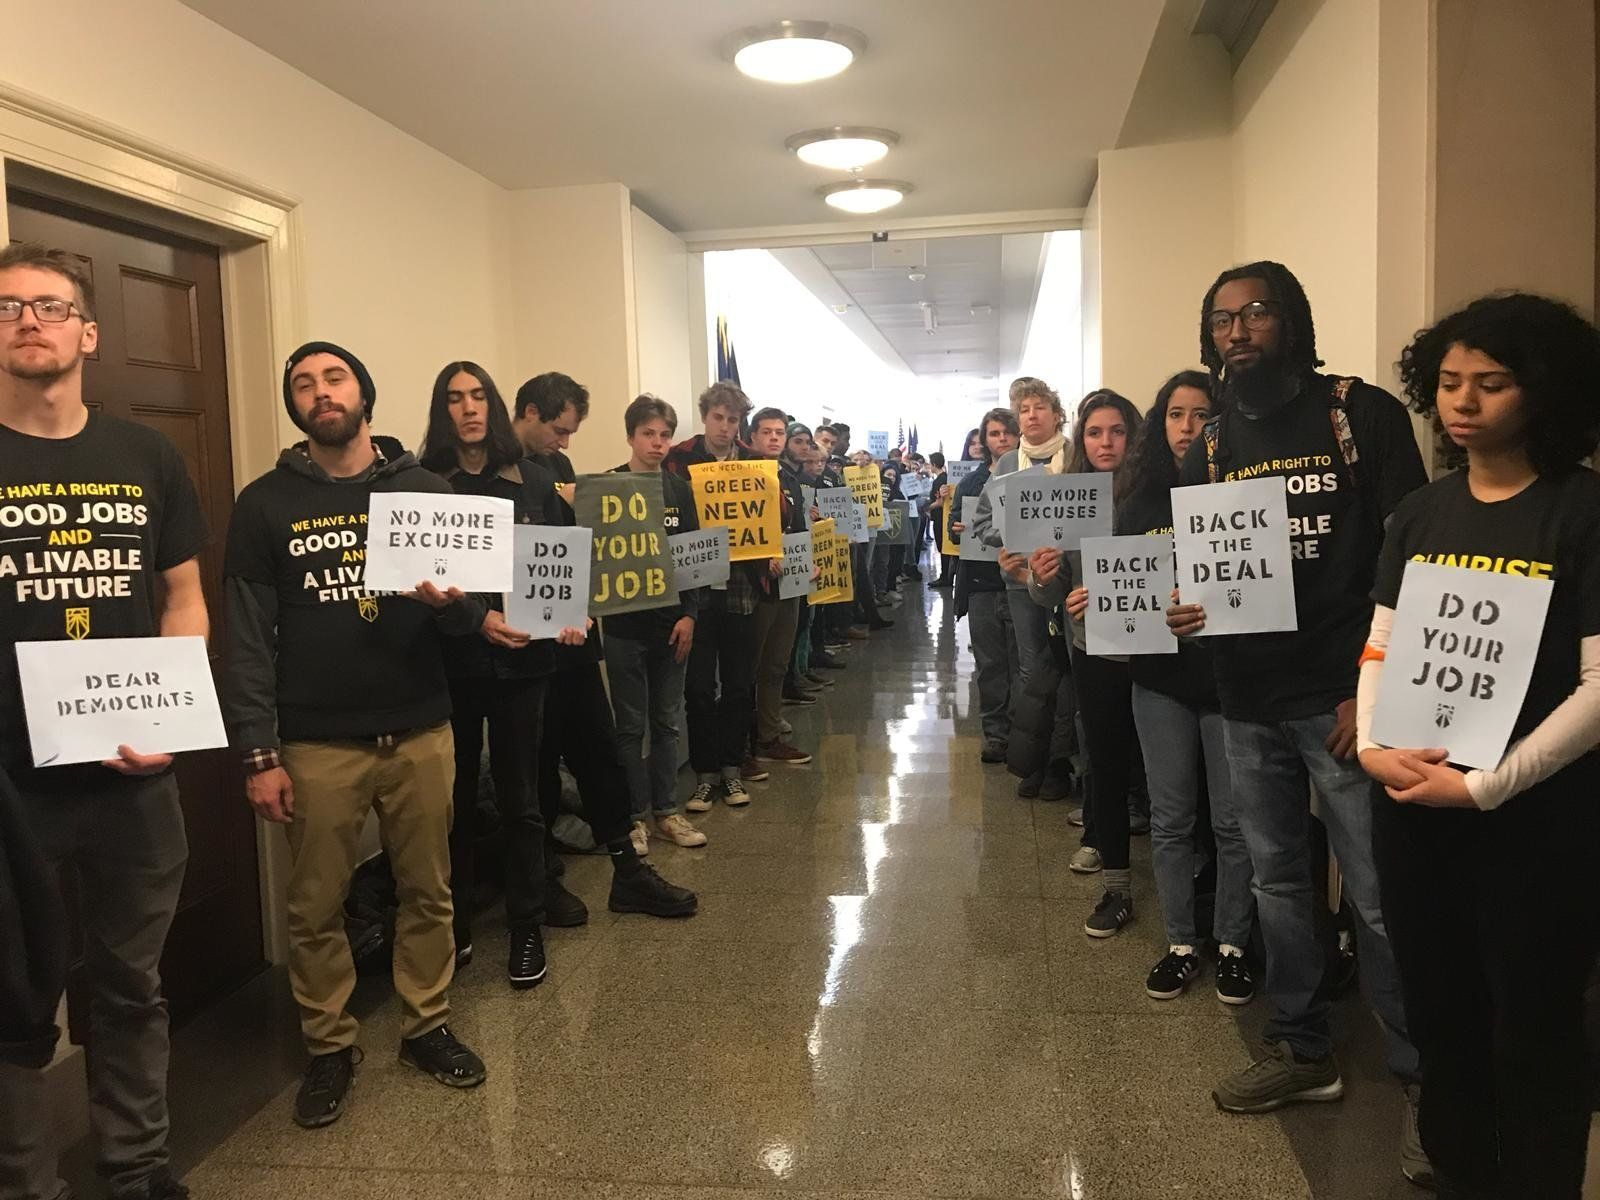 Protesters Arrested Outside Nancy Pelosi's Office In Climate